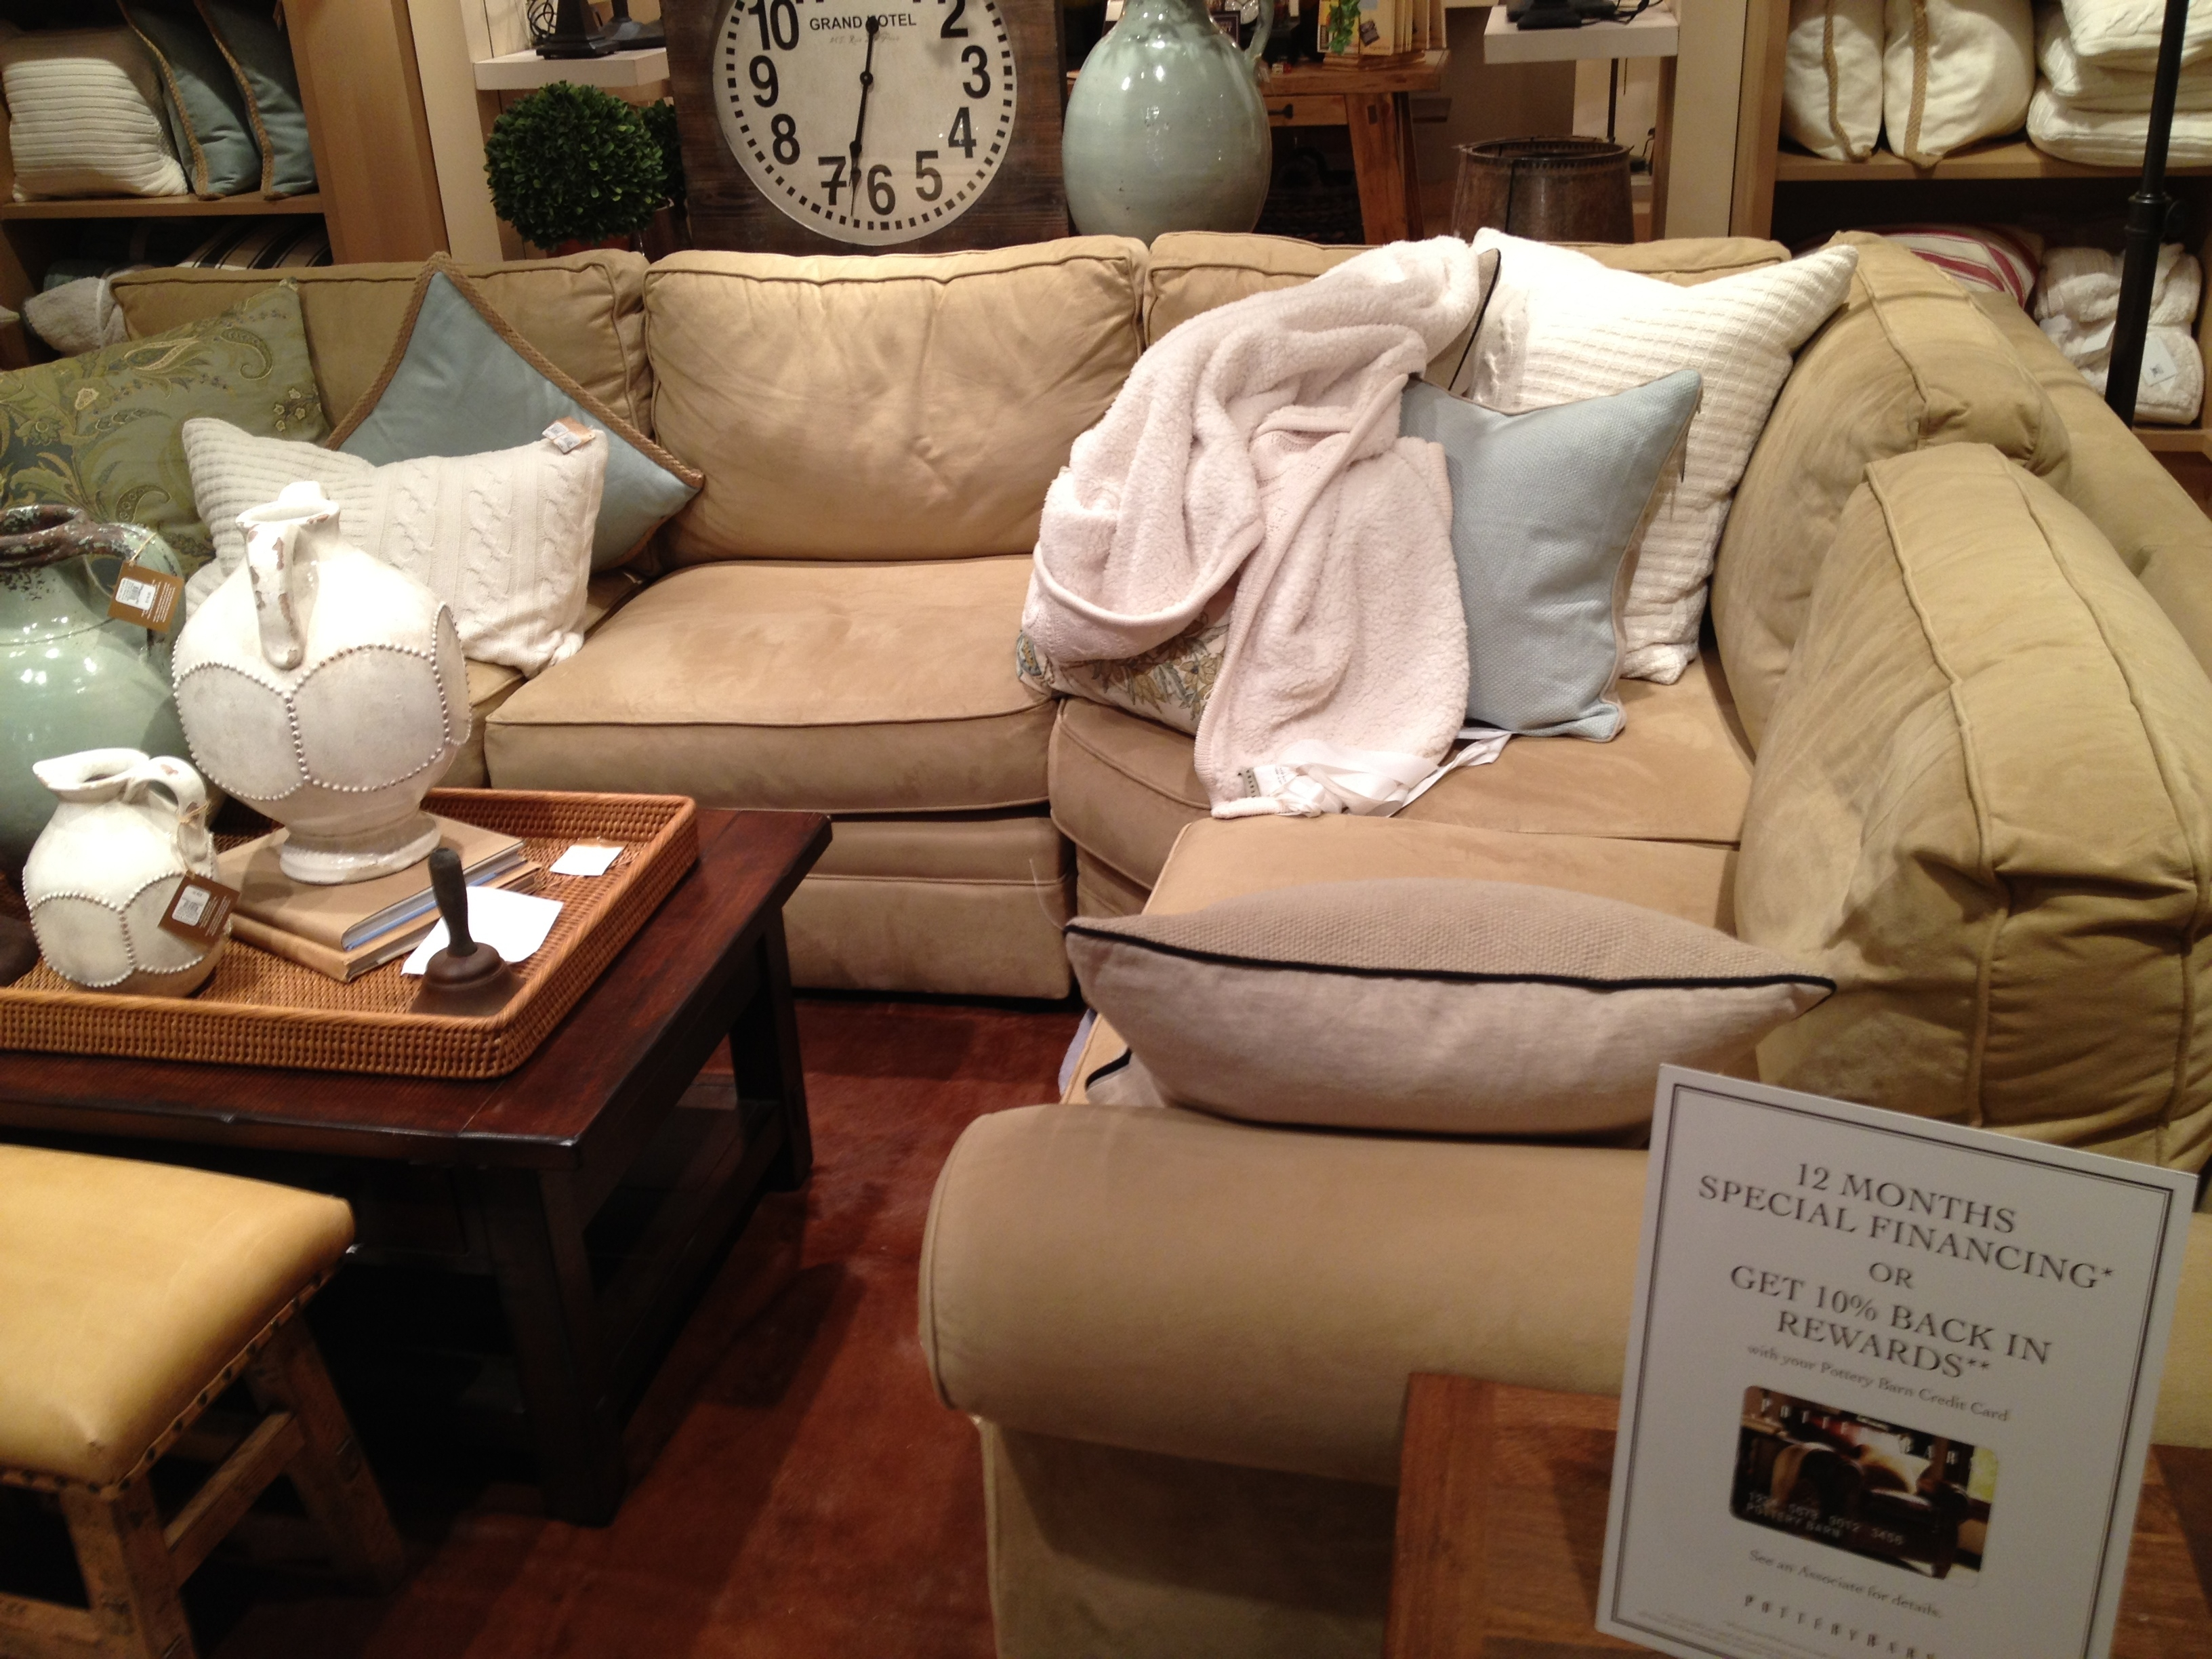 Excellent Down Filled Sectional Sofa 69 For Your Gray Sectional Sofa For Down Filled Sectional Sofas (Image 6 of 10)